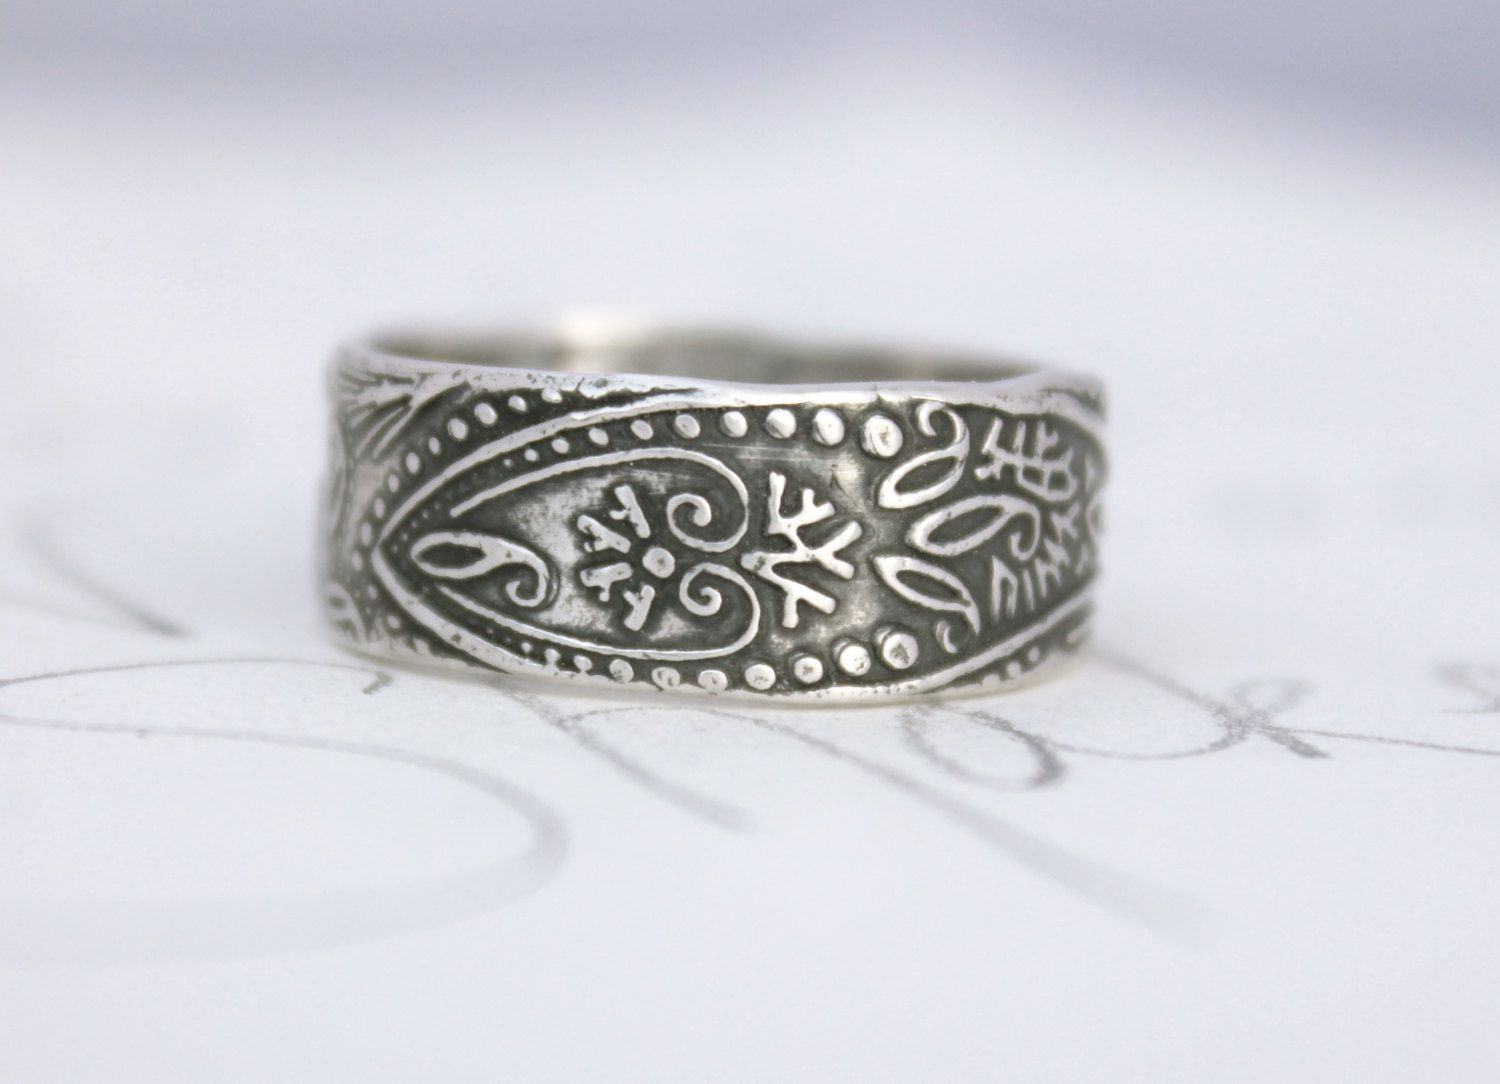 wide mens wedding band . recycled silver paisley ring . engraved custom ring . bohemian mens ring ready to ship size 7 1/2. $194.00, via Etsy.